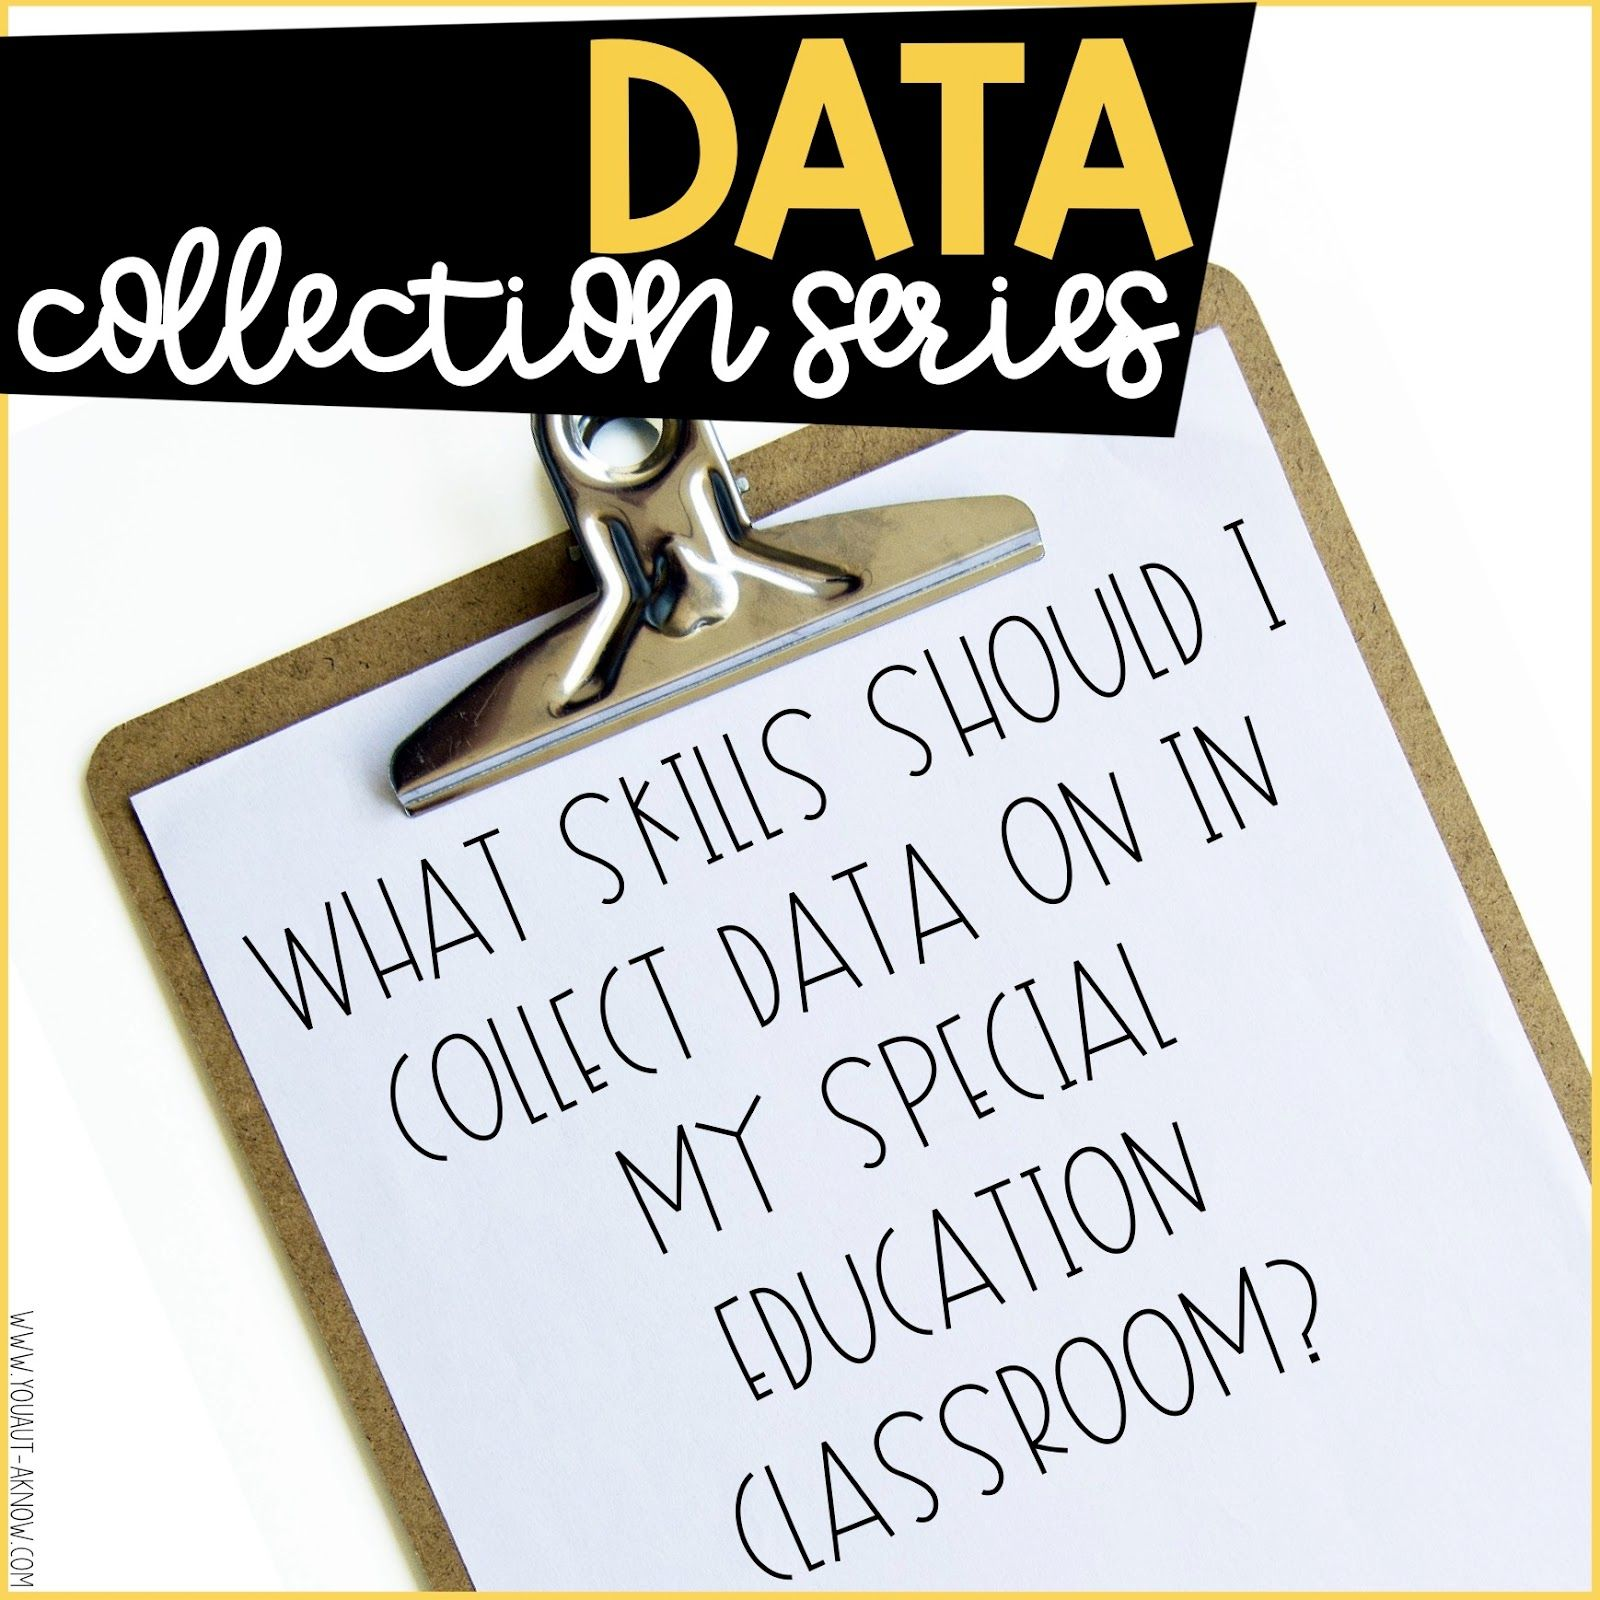 Data Collection Series What Should I Take Data On